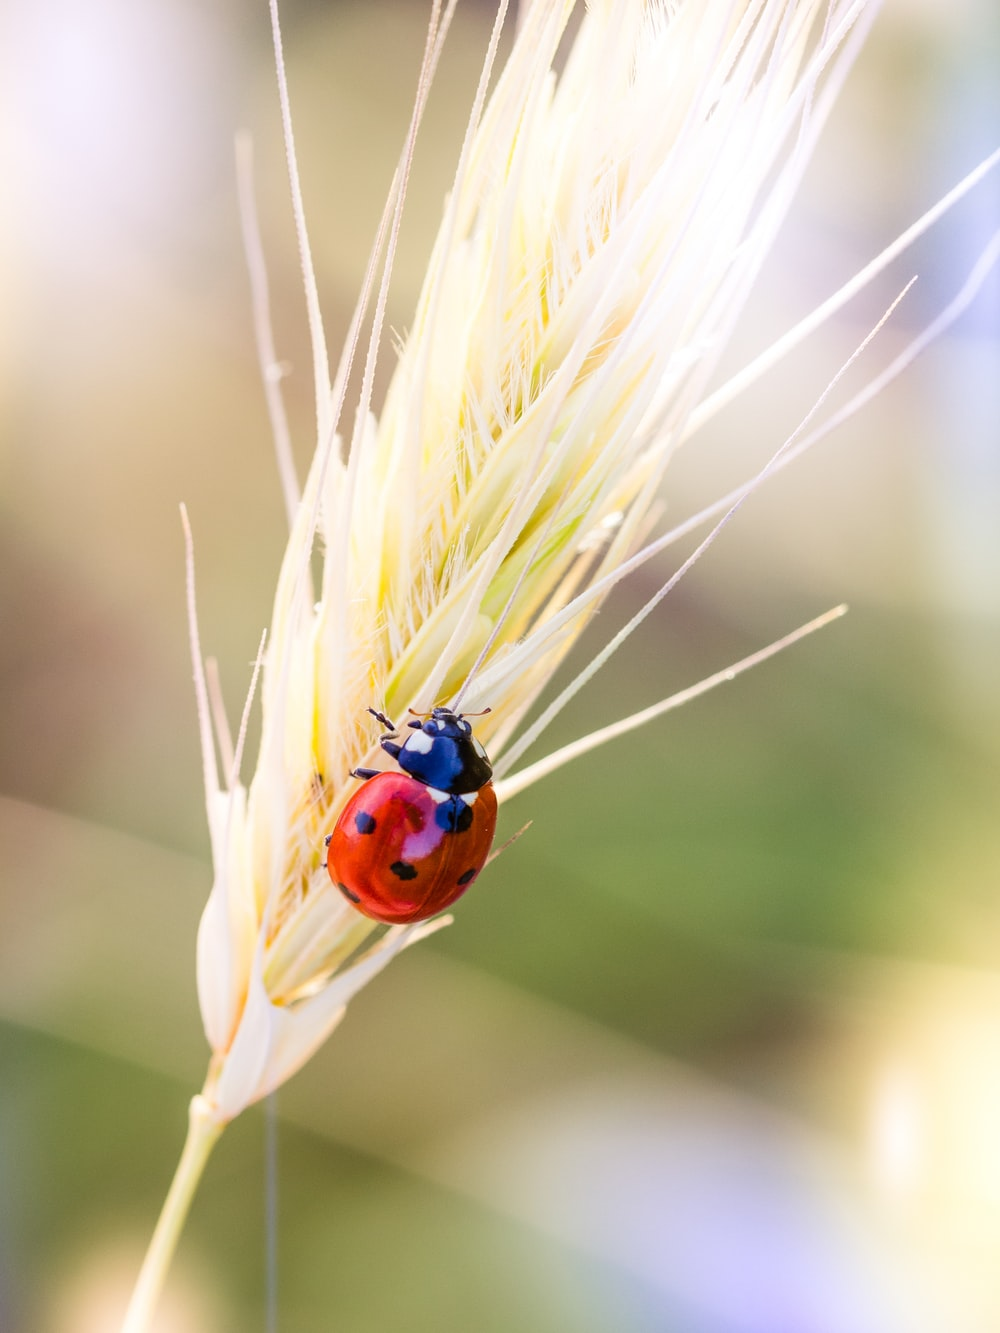 red ladybug perched on brown wheat in close up photography during daytime